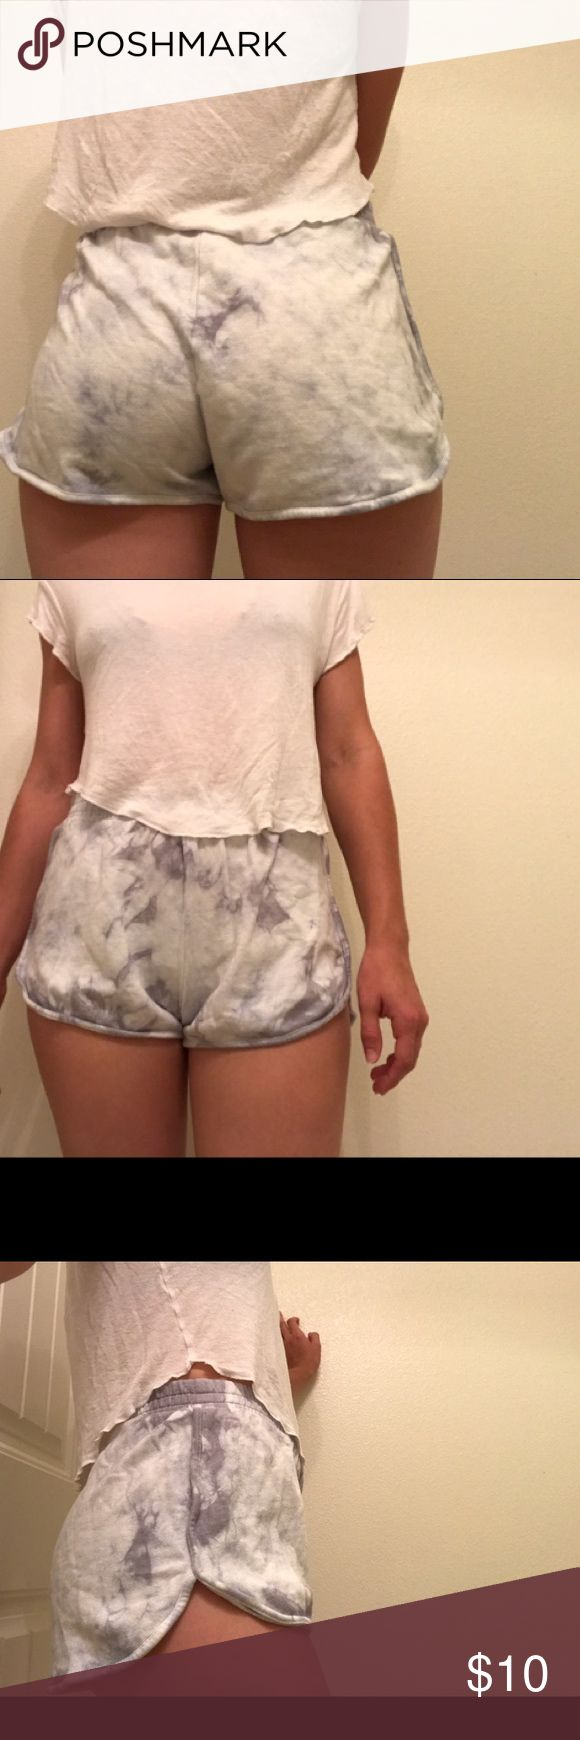 Never Worn Tie Dyed Lounge Shorts Super comfy lounge shorts! Forever 21 Shorts